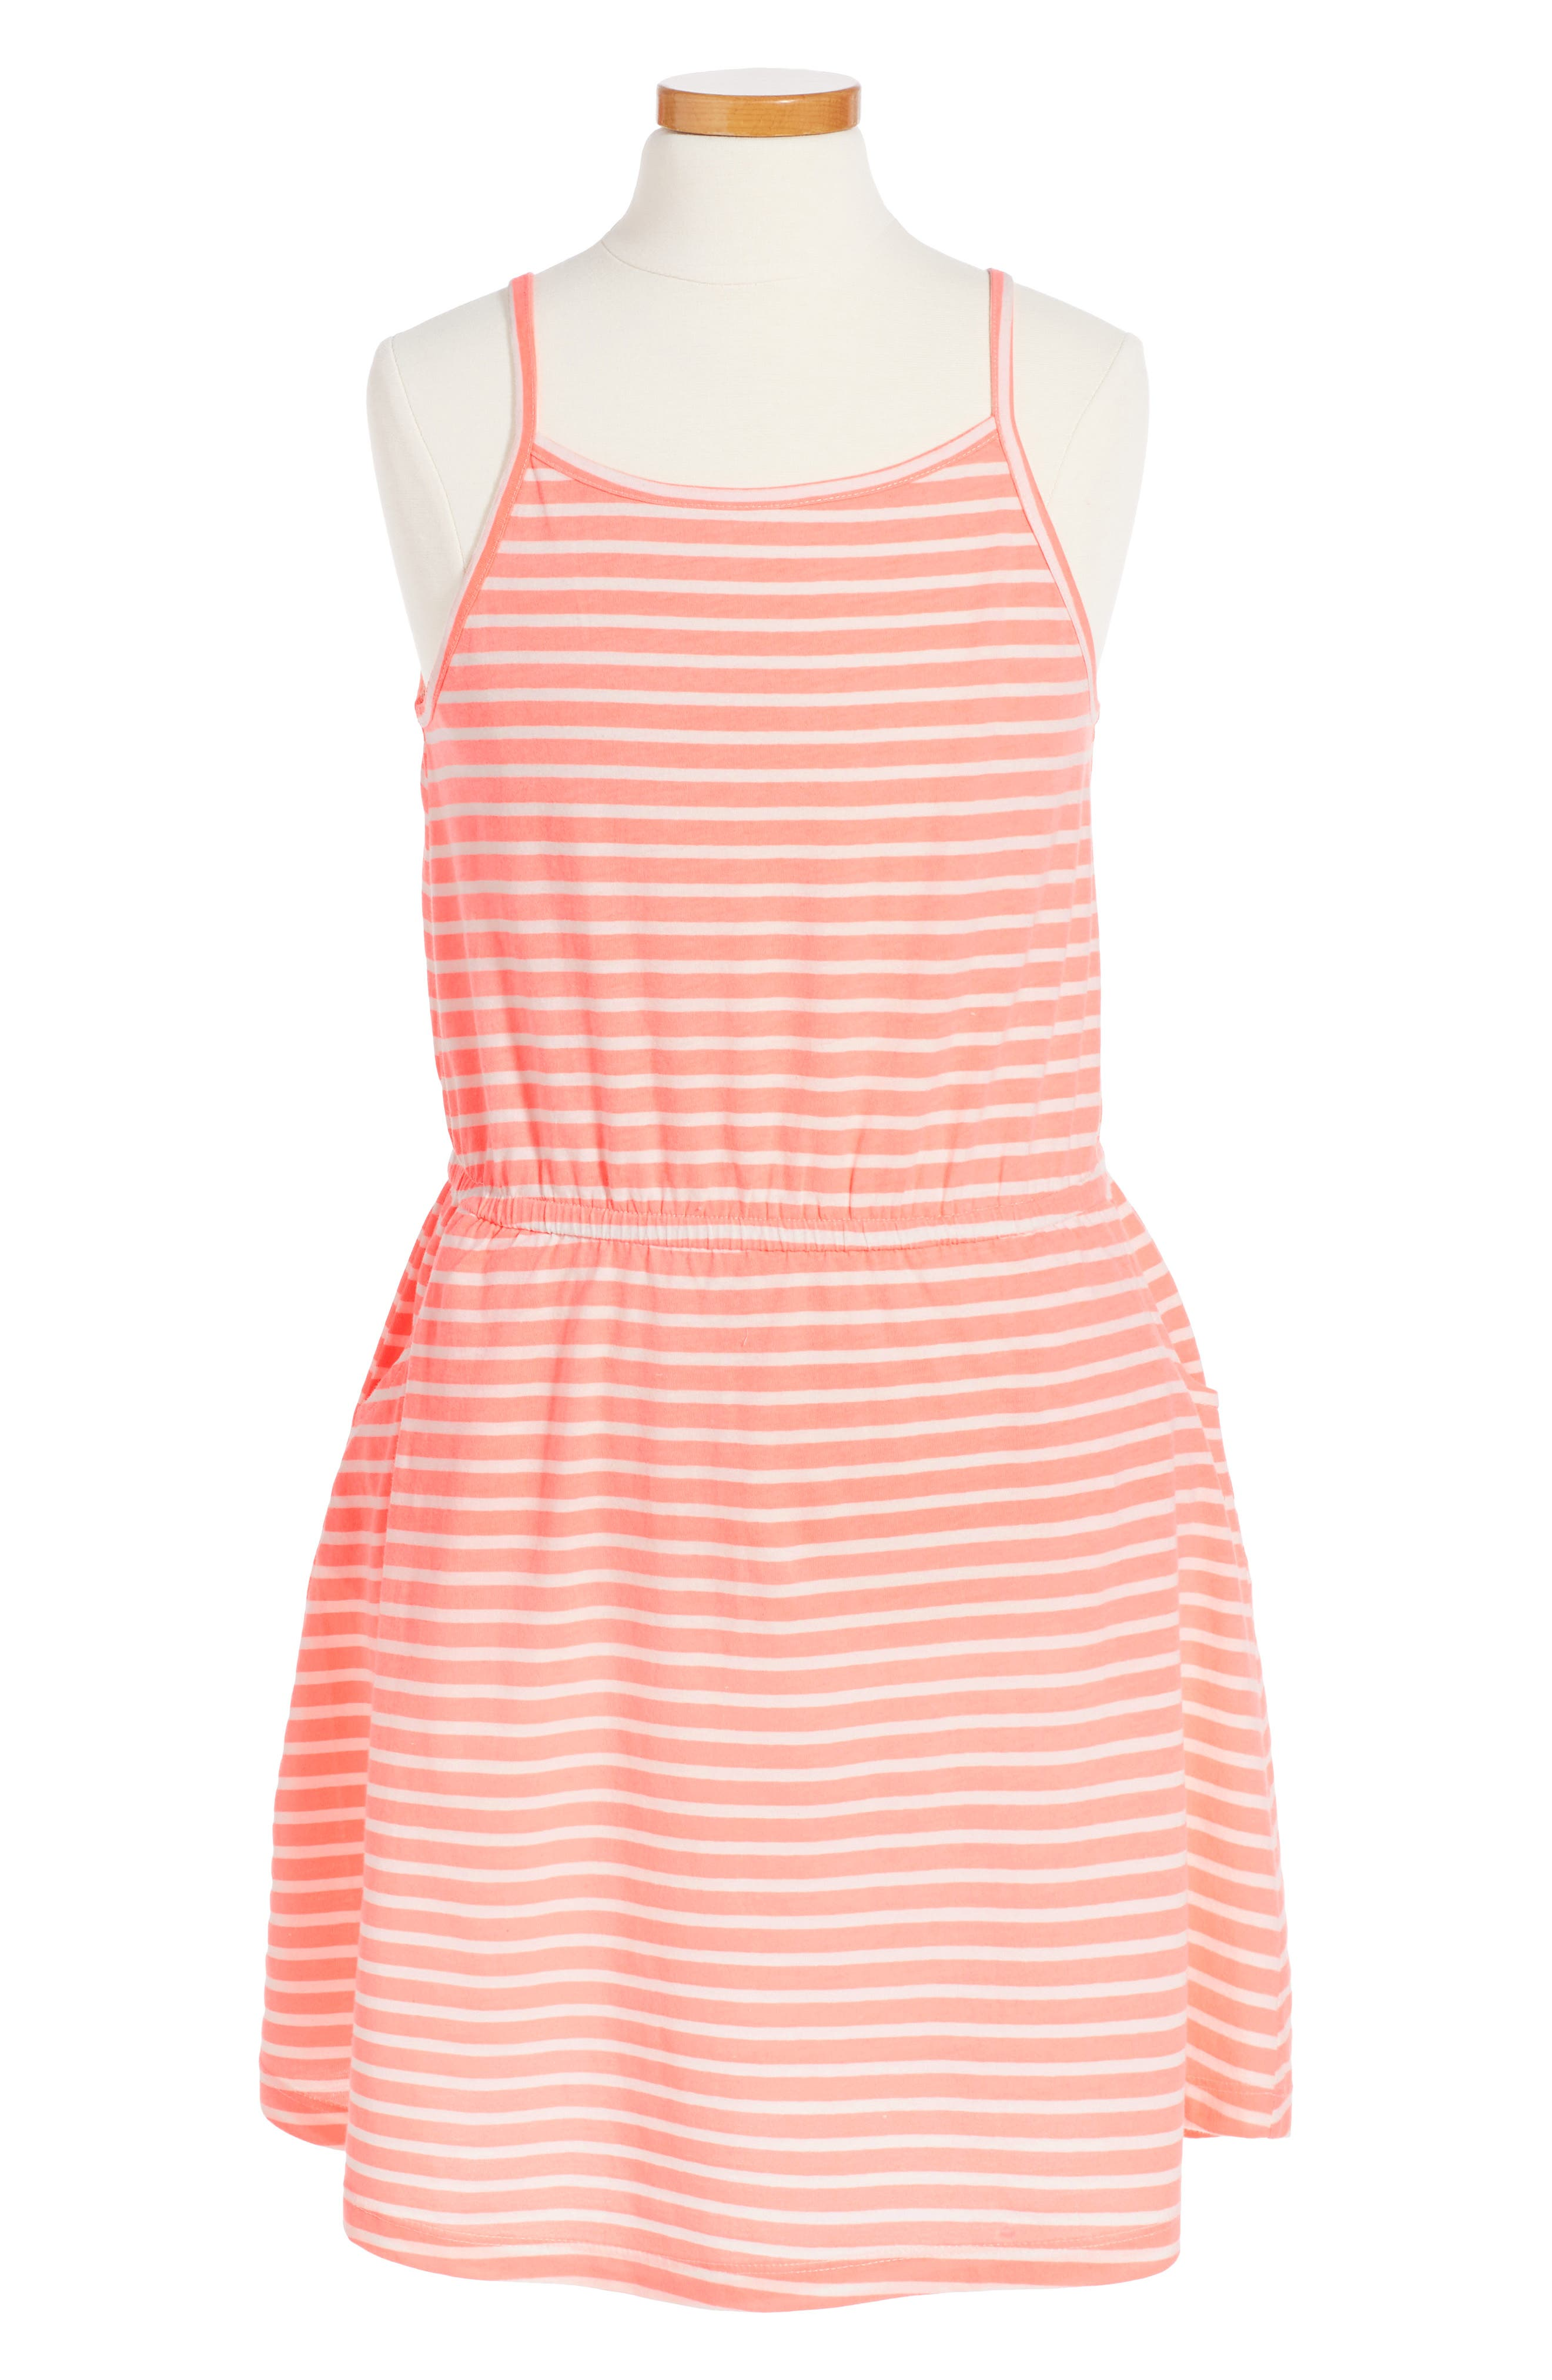 Jaden Stripe Dress,                         Main,                         color, Neon Coral